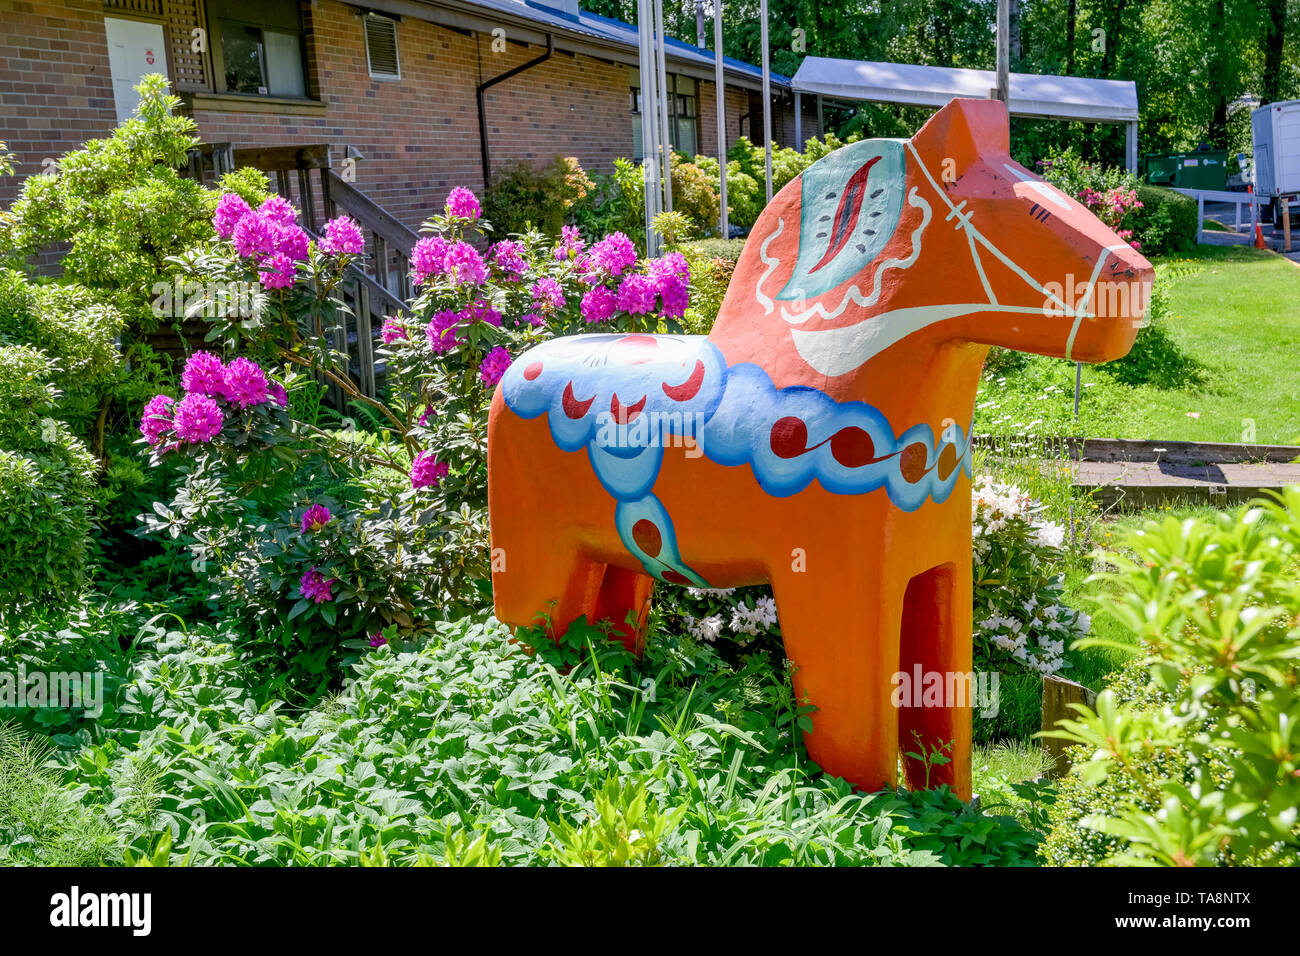 Folk art horse, Scandinavian Community Centre, Burnaby, British Columbia, Canada - Stock Image